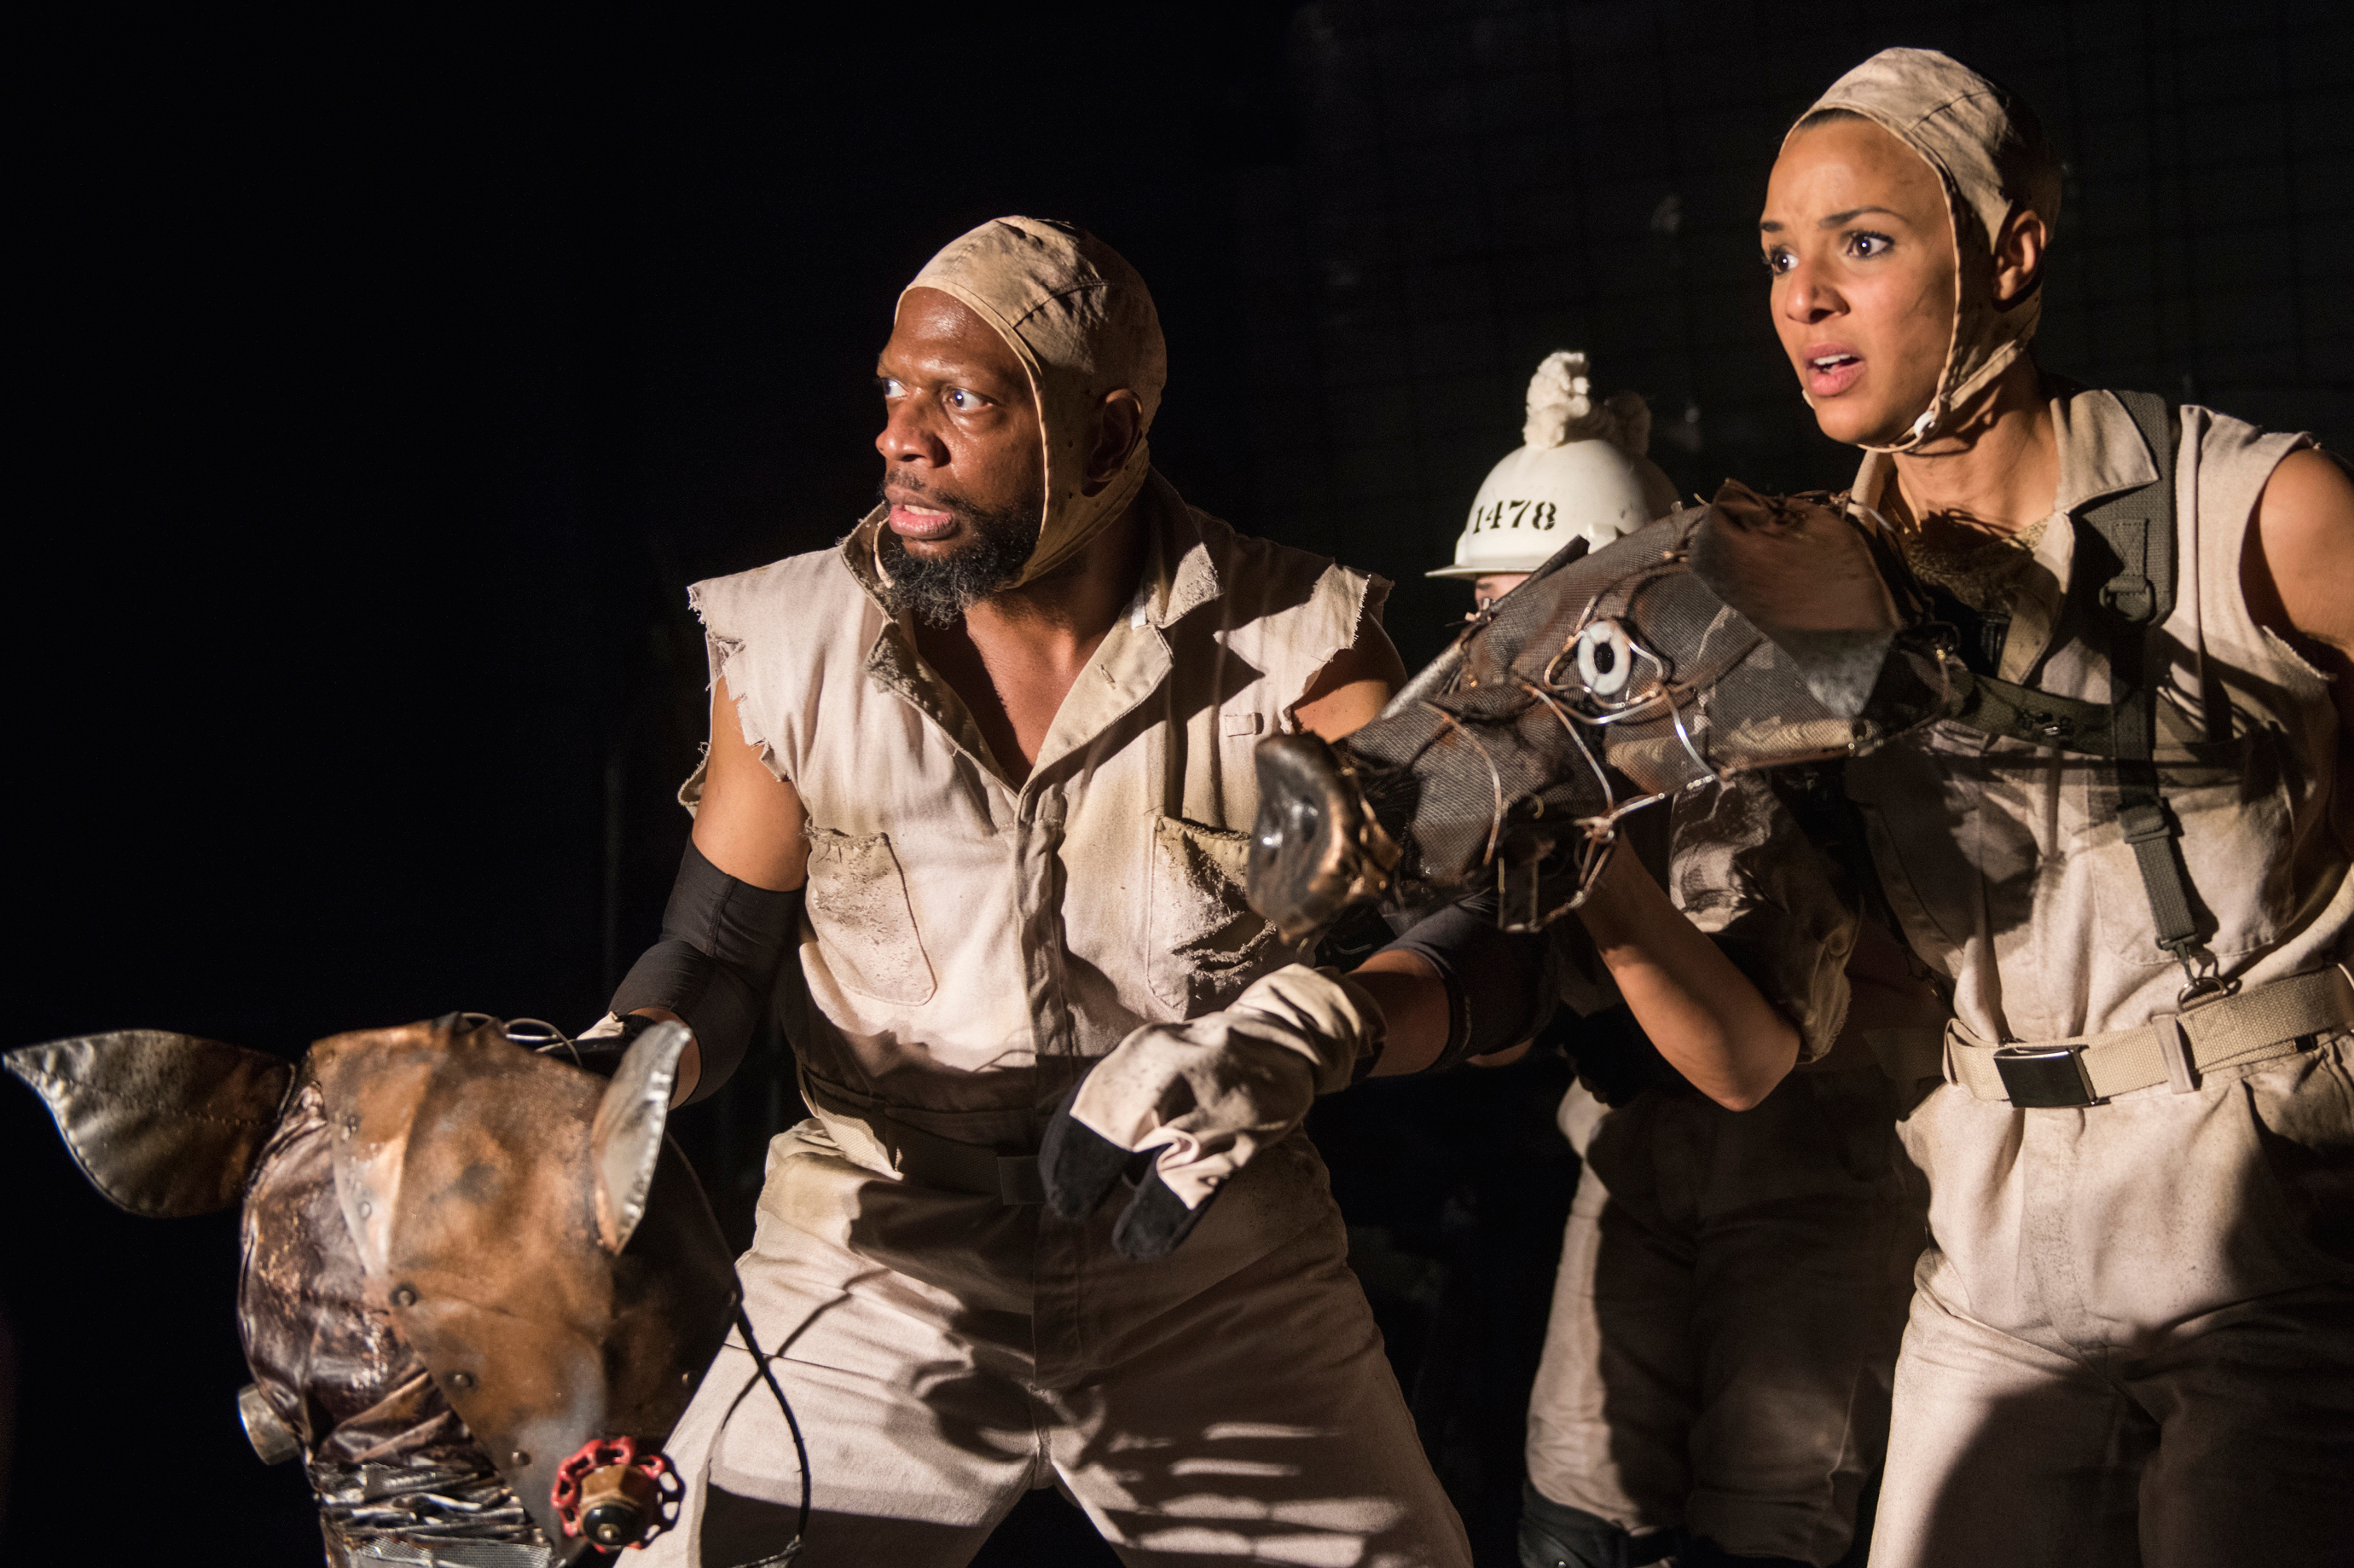 Animal Farm Movie Porn arena players and baltimore rock opera society collaborate